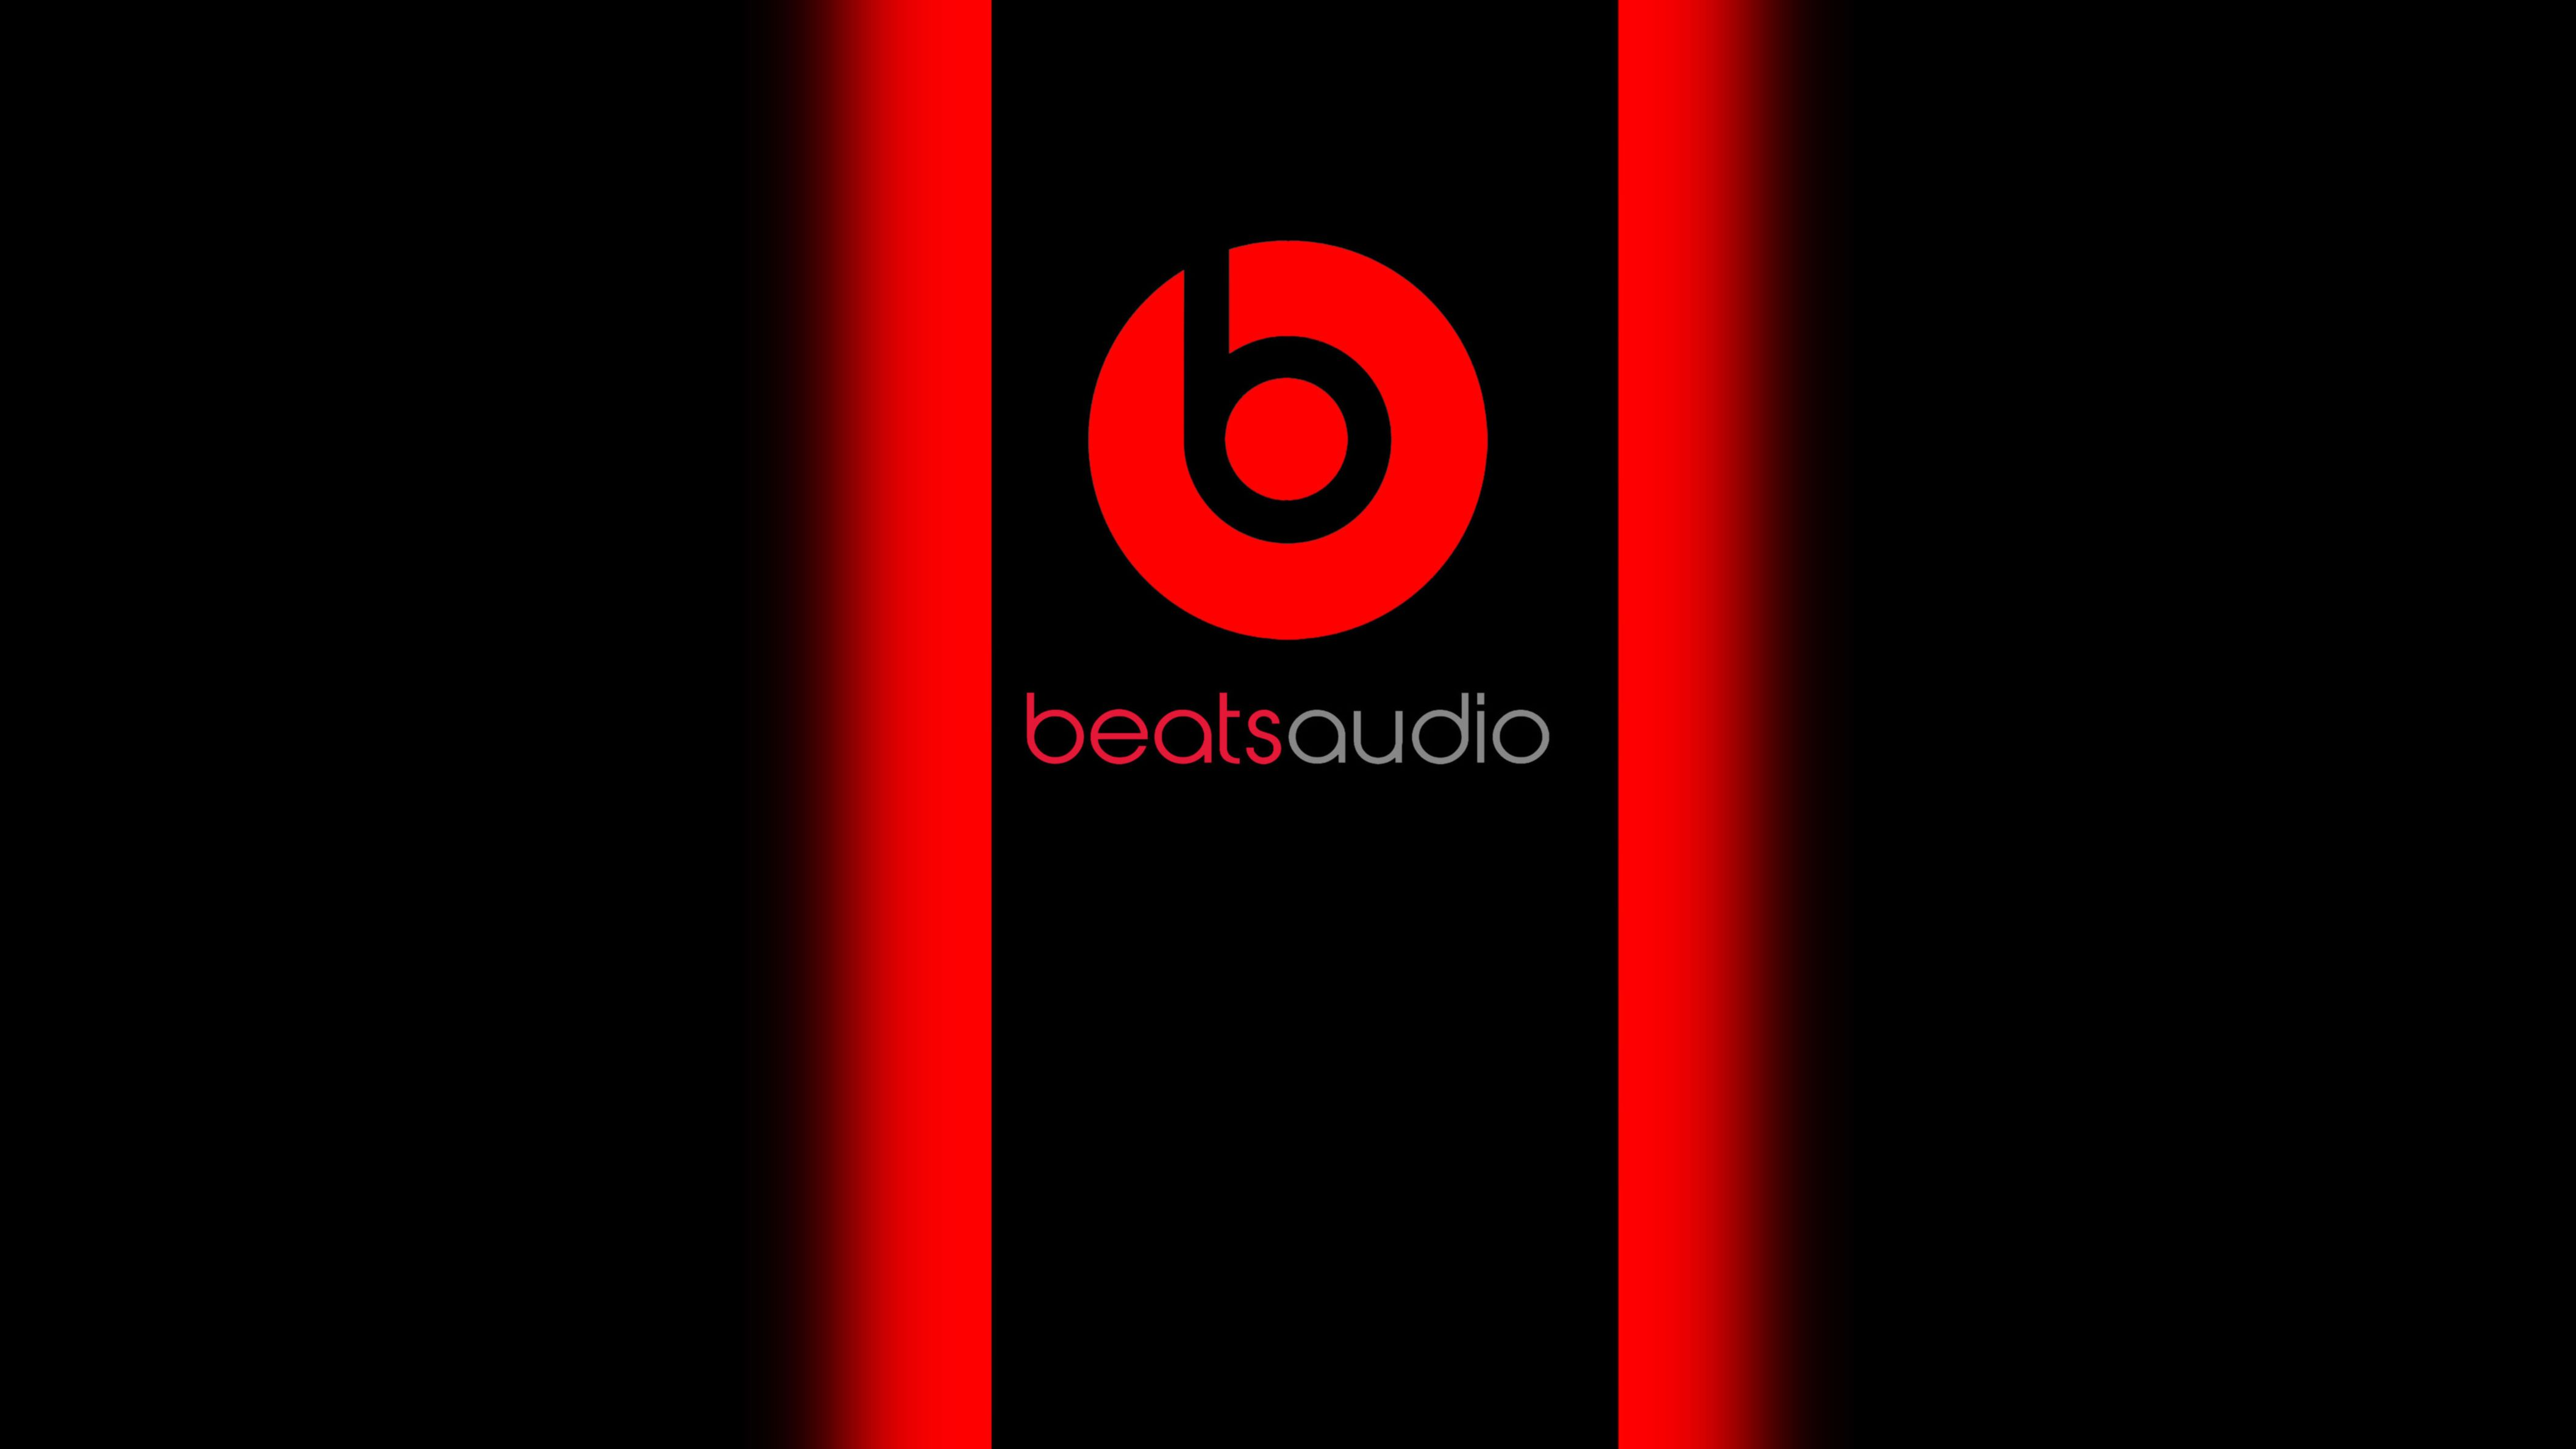 Download free HD Beats Audio HD Wallpaper, image